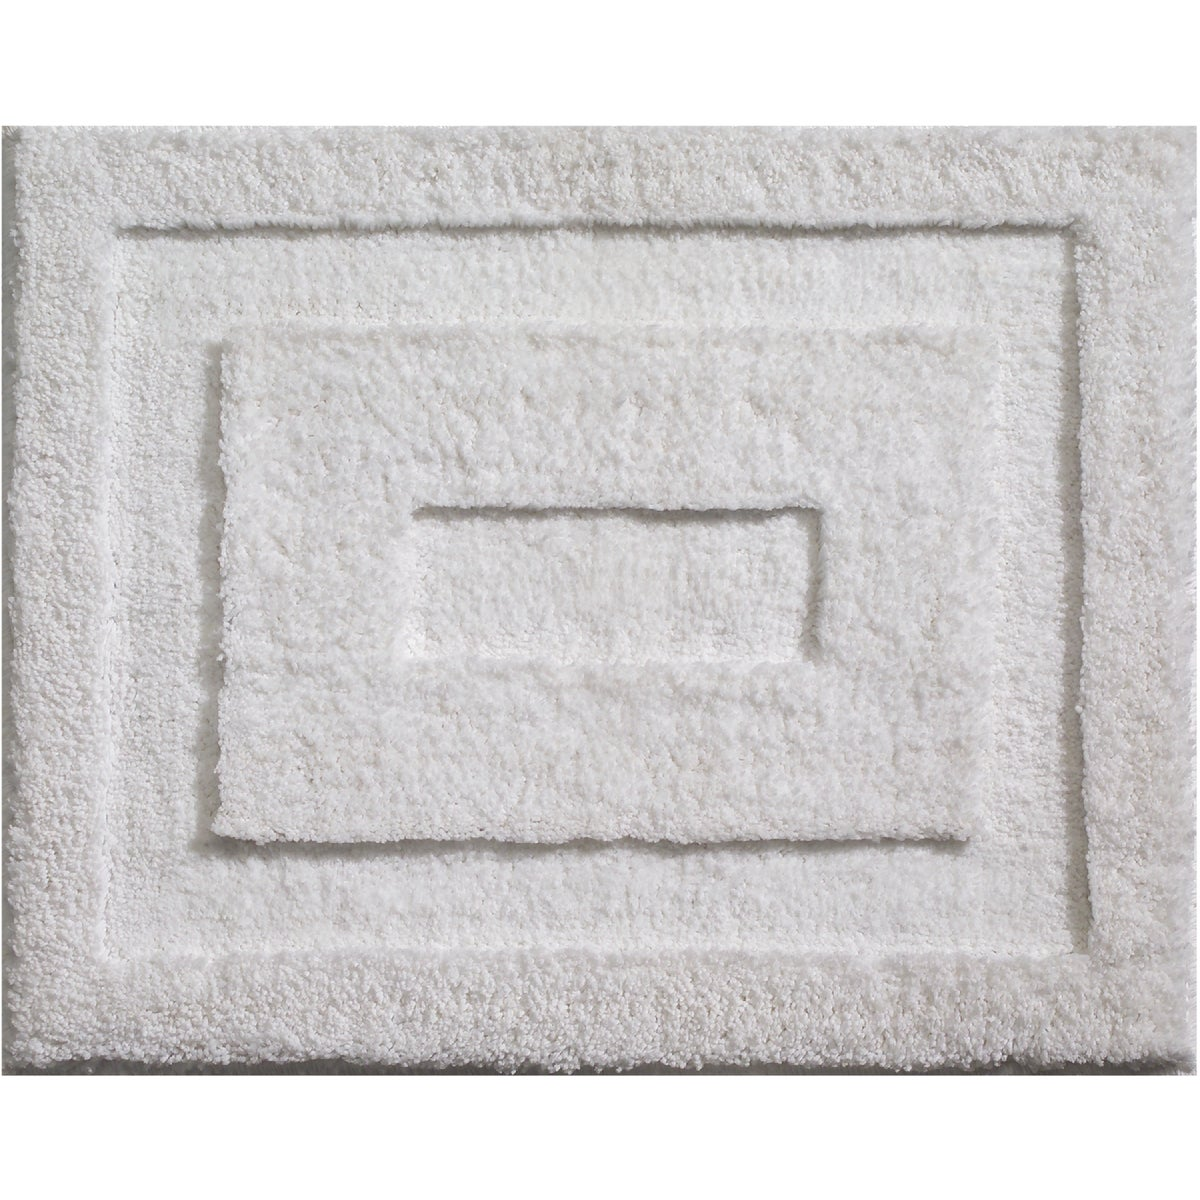 17X21 WHITE BATH RUG - 17030 by Interdesign Inc